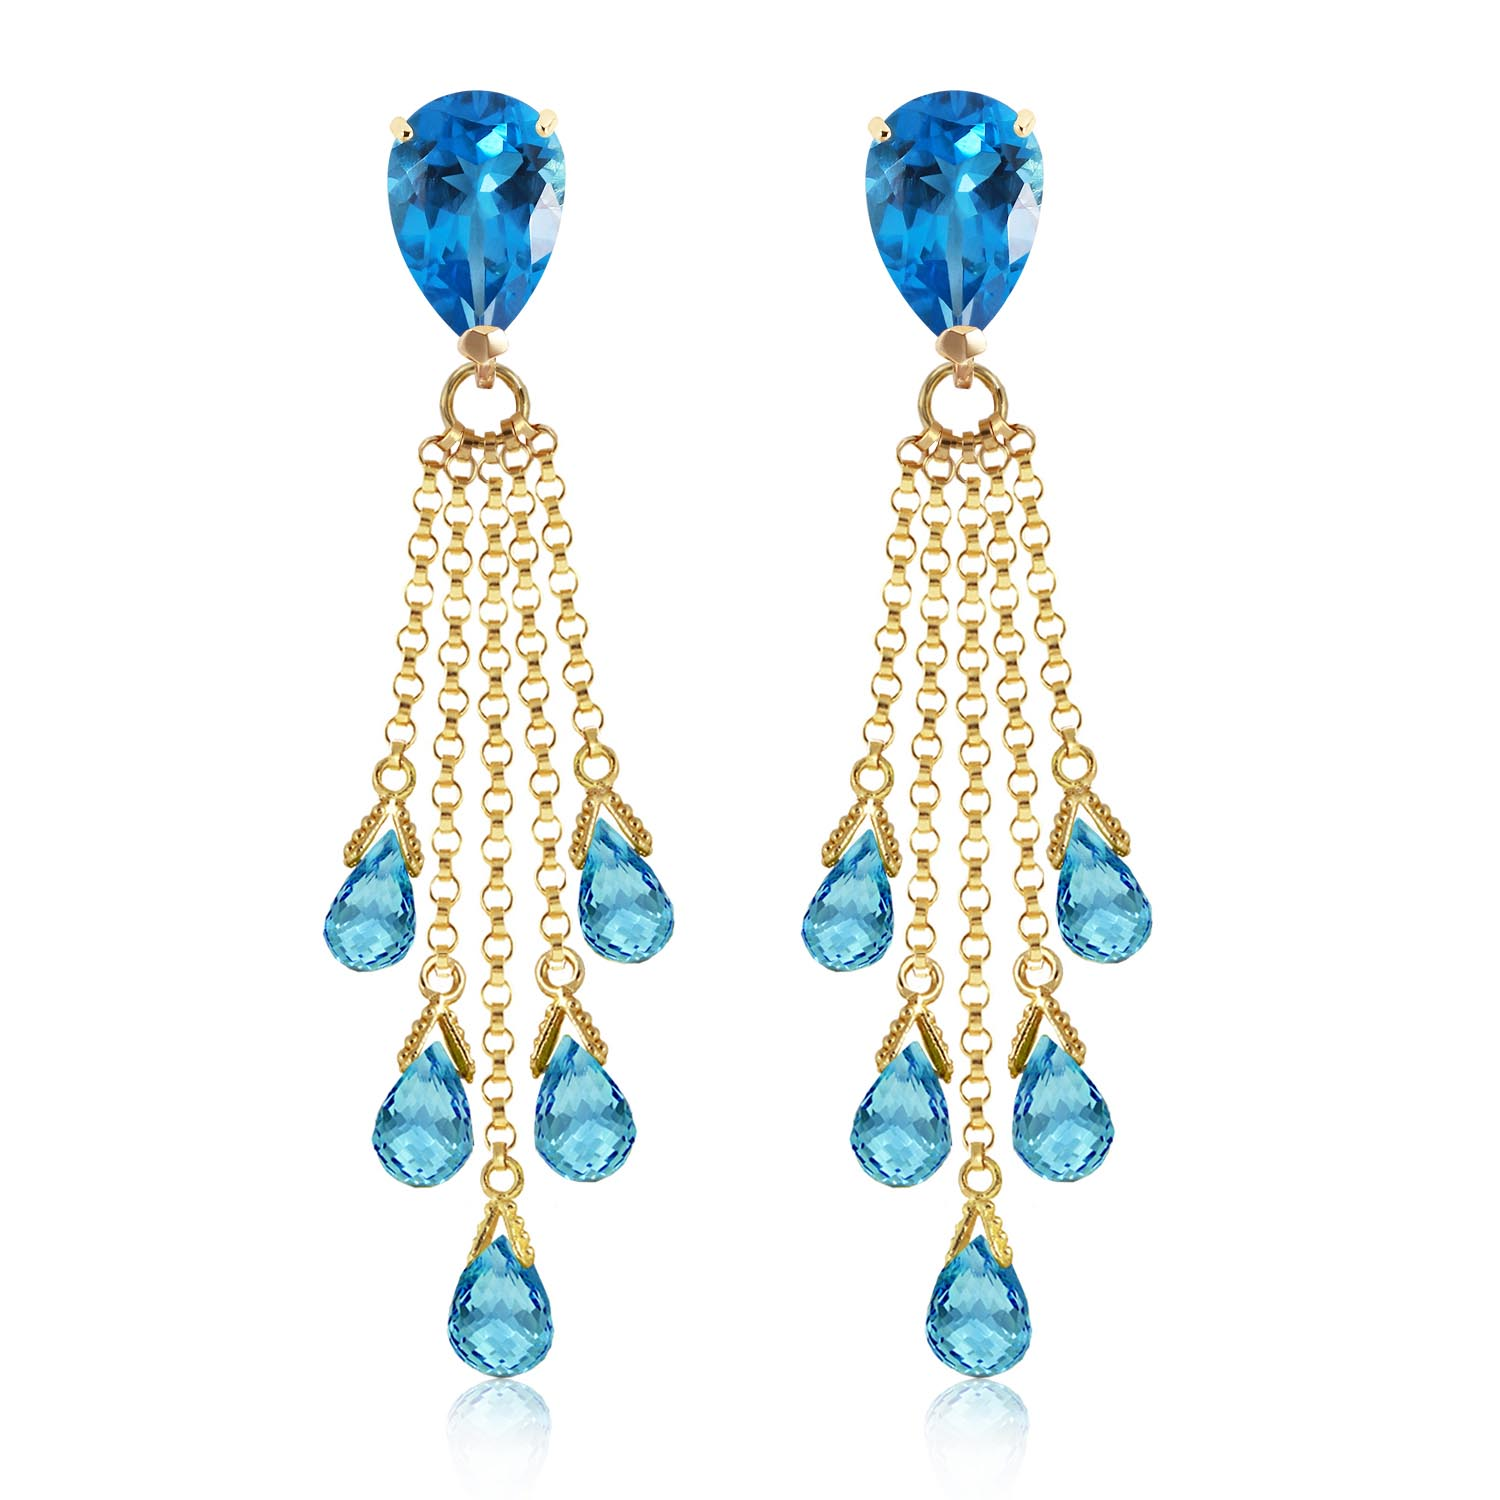 Blue Topaz Comet Tail Drop Earrings 15.5ctw in 14K Gold